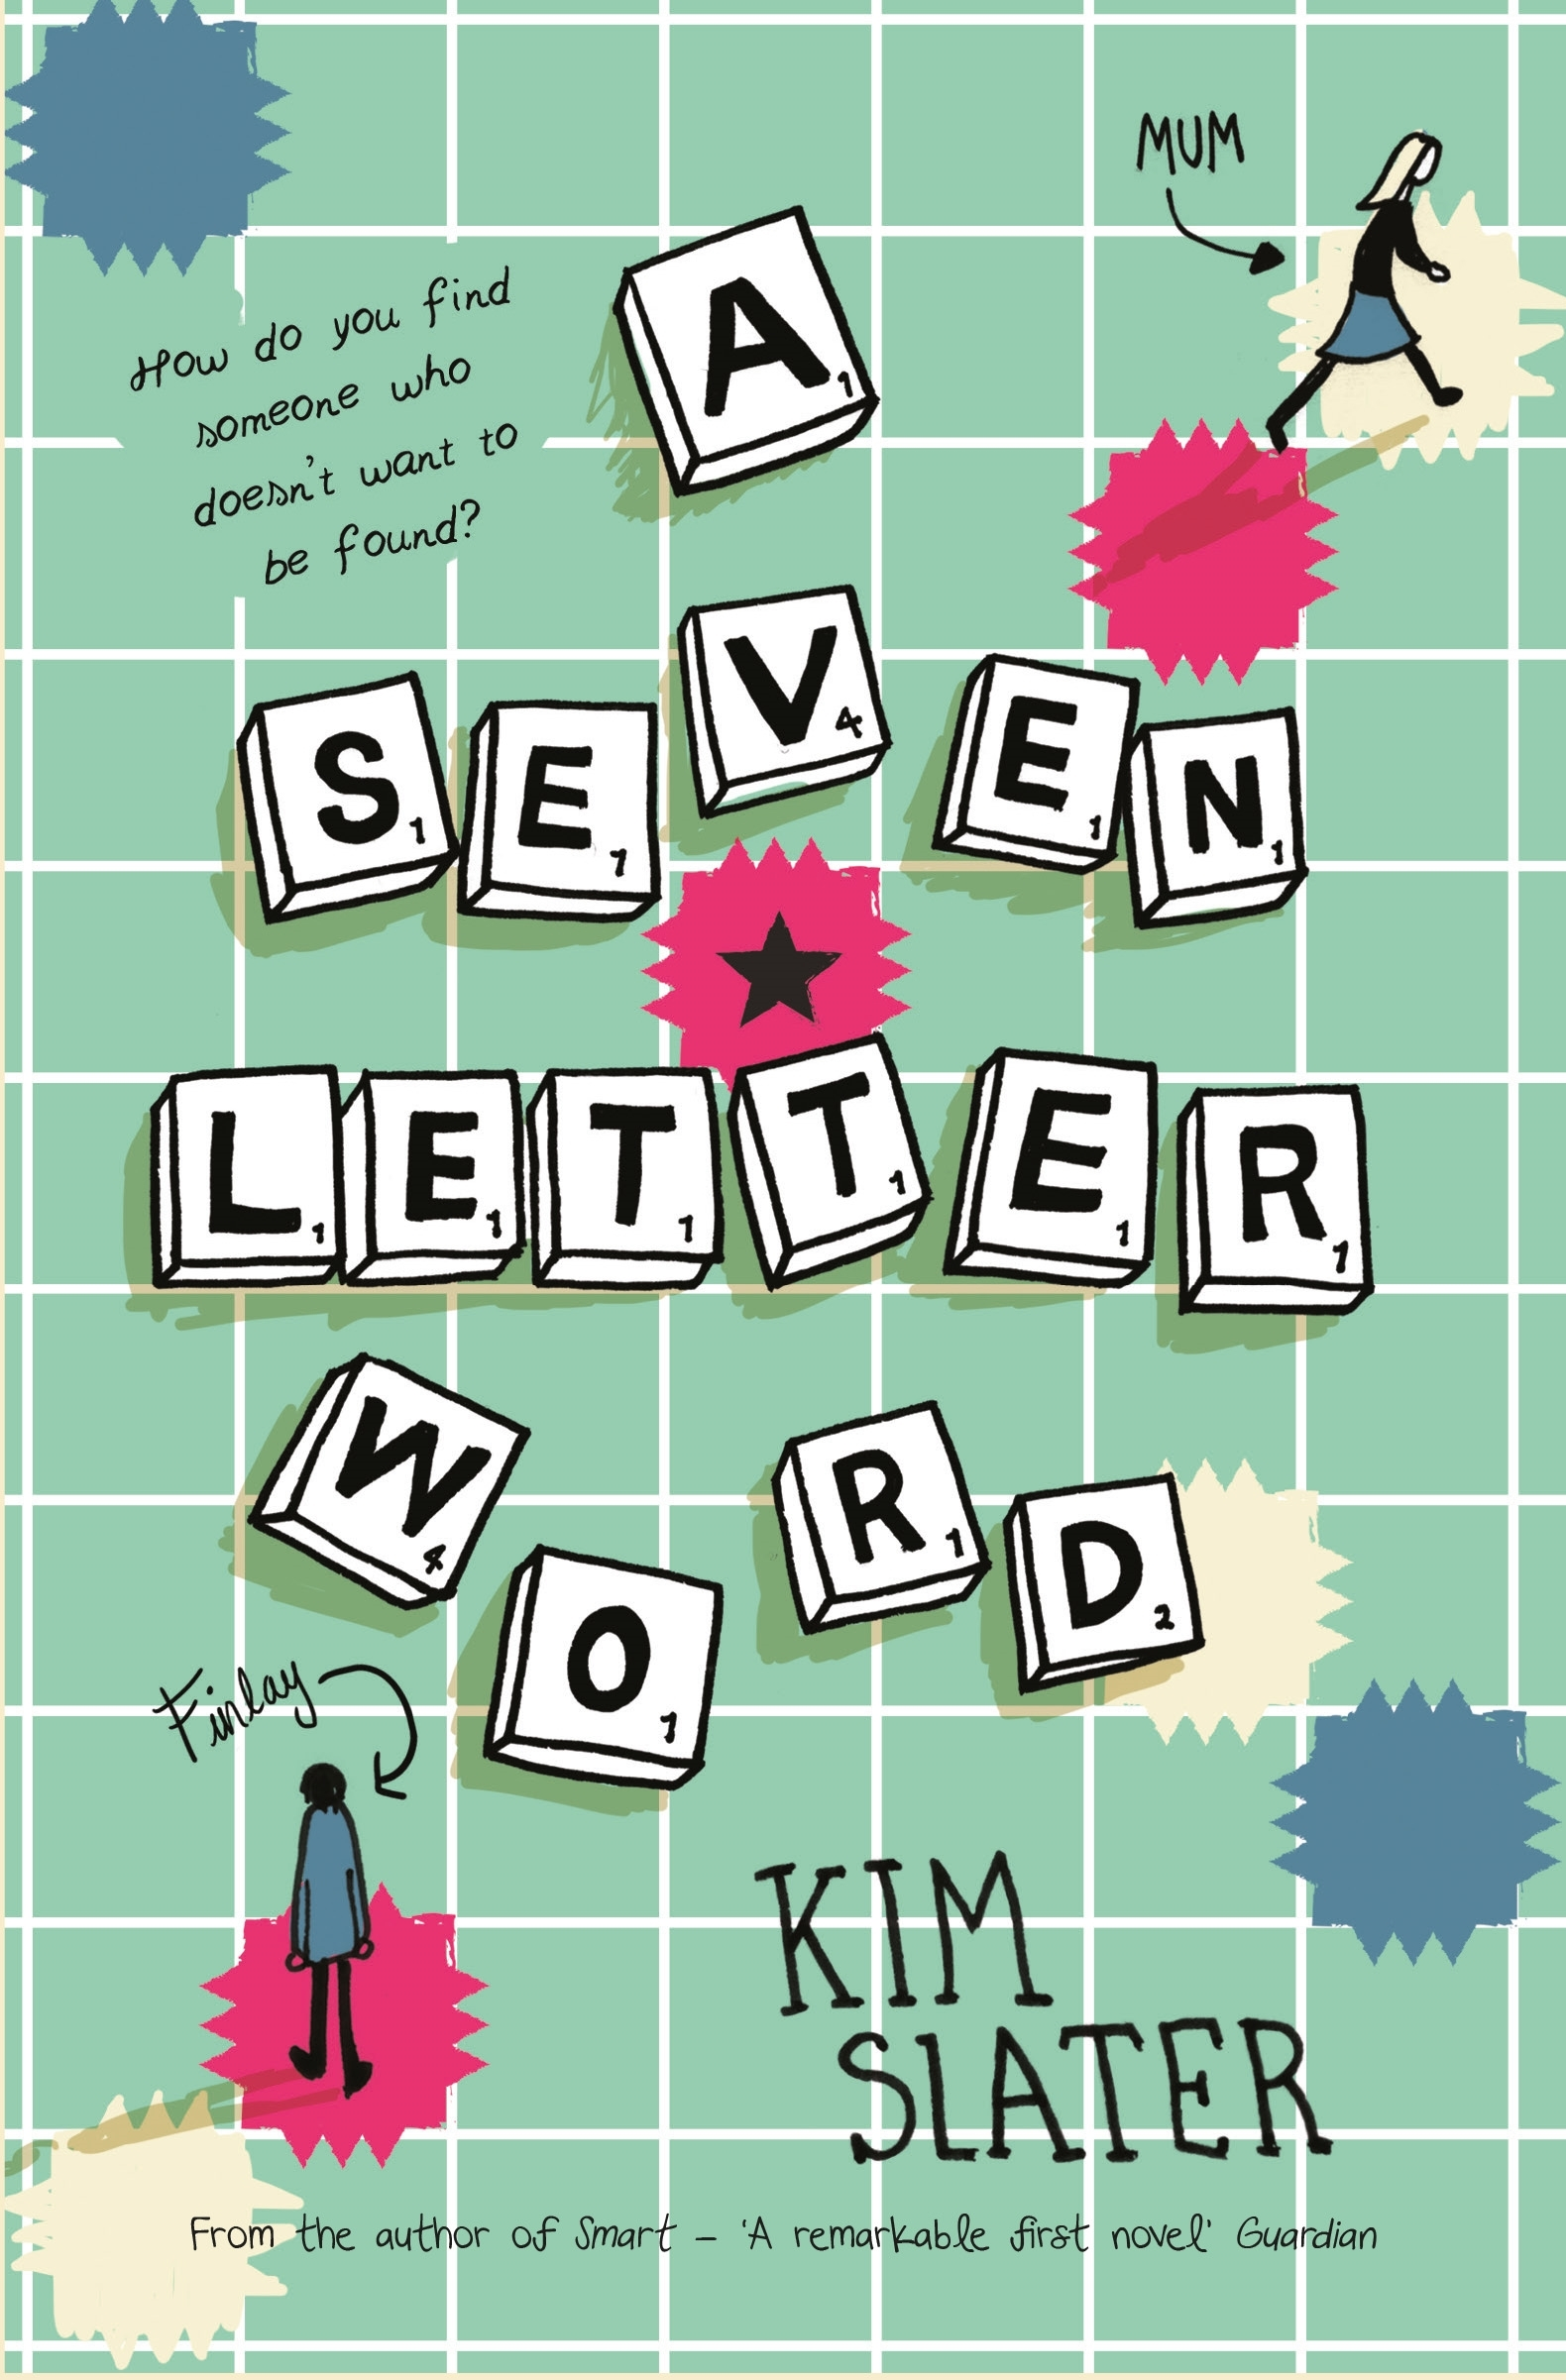 Seven Letter Word With S In The Middle